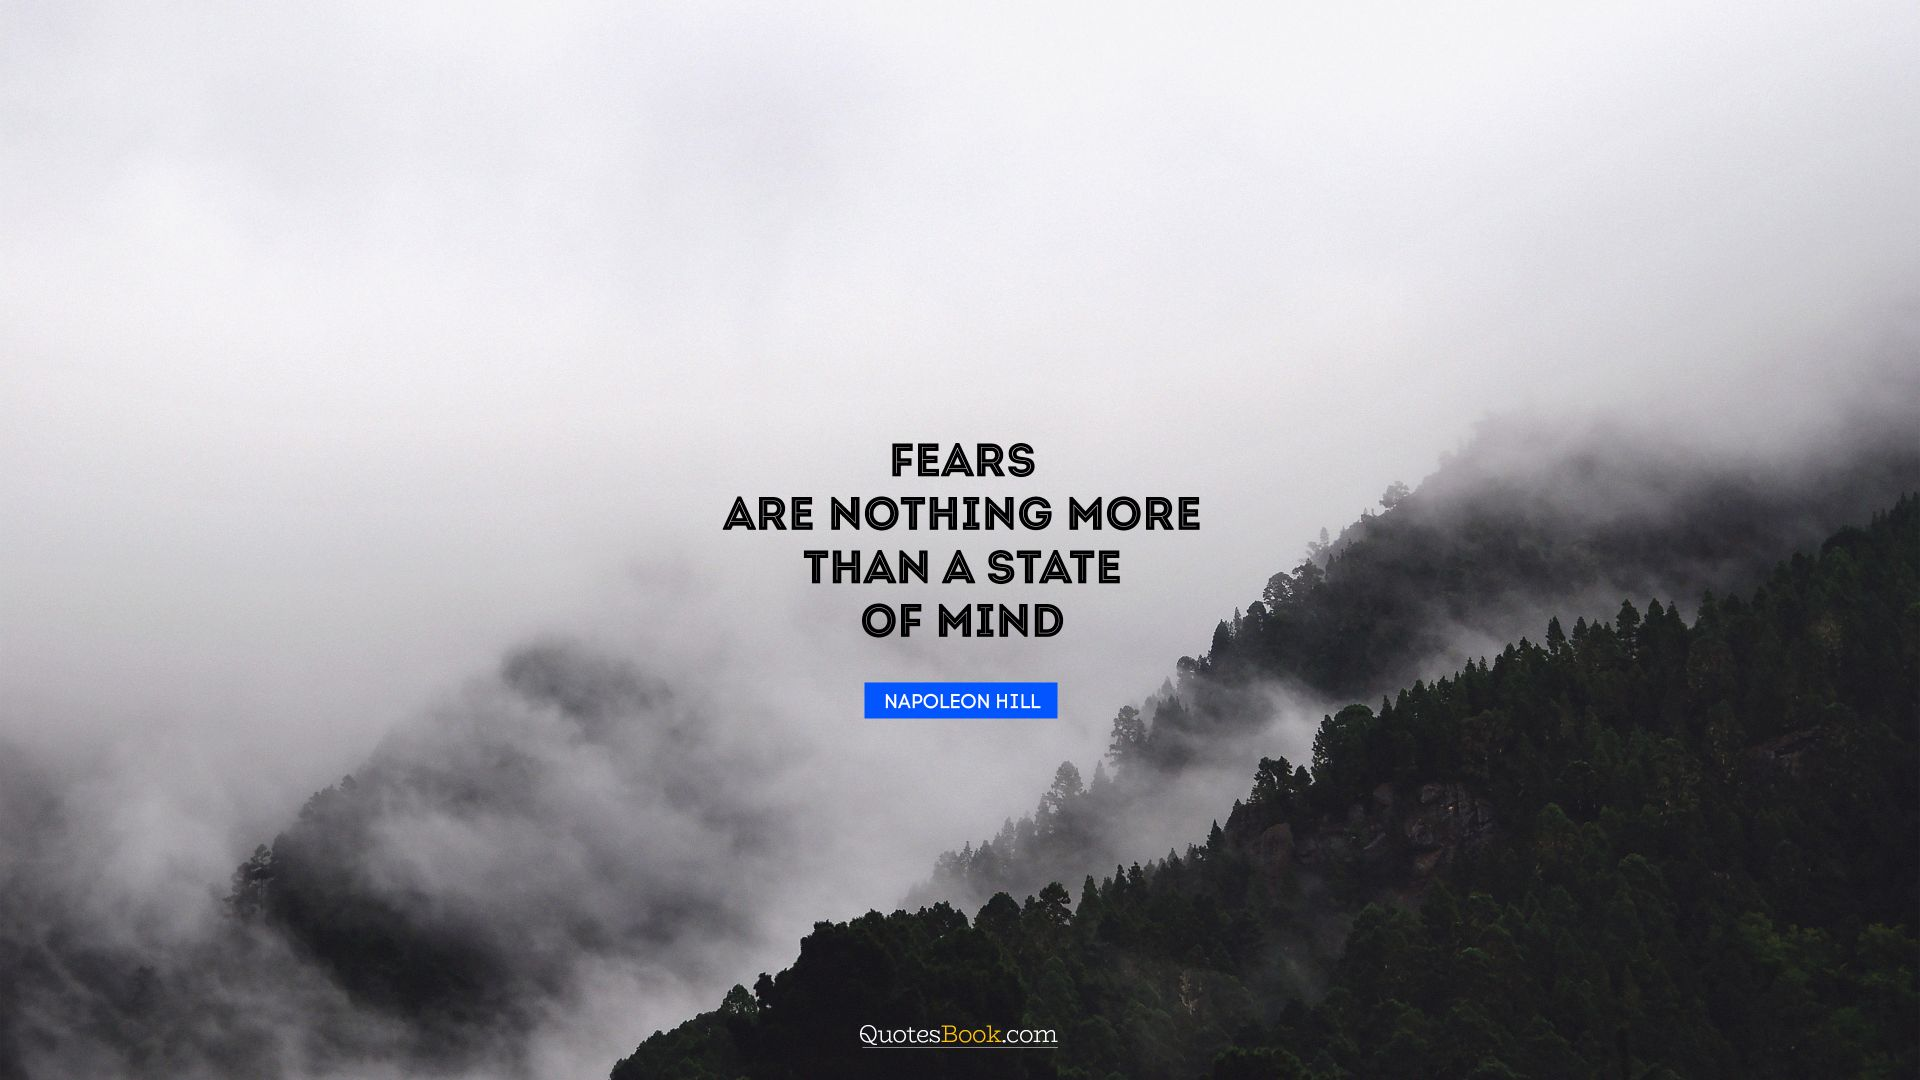 Fears are nothing more than a state of mind. - Quote by Napoleon Hill